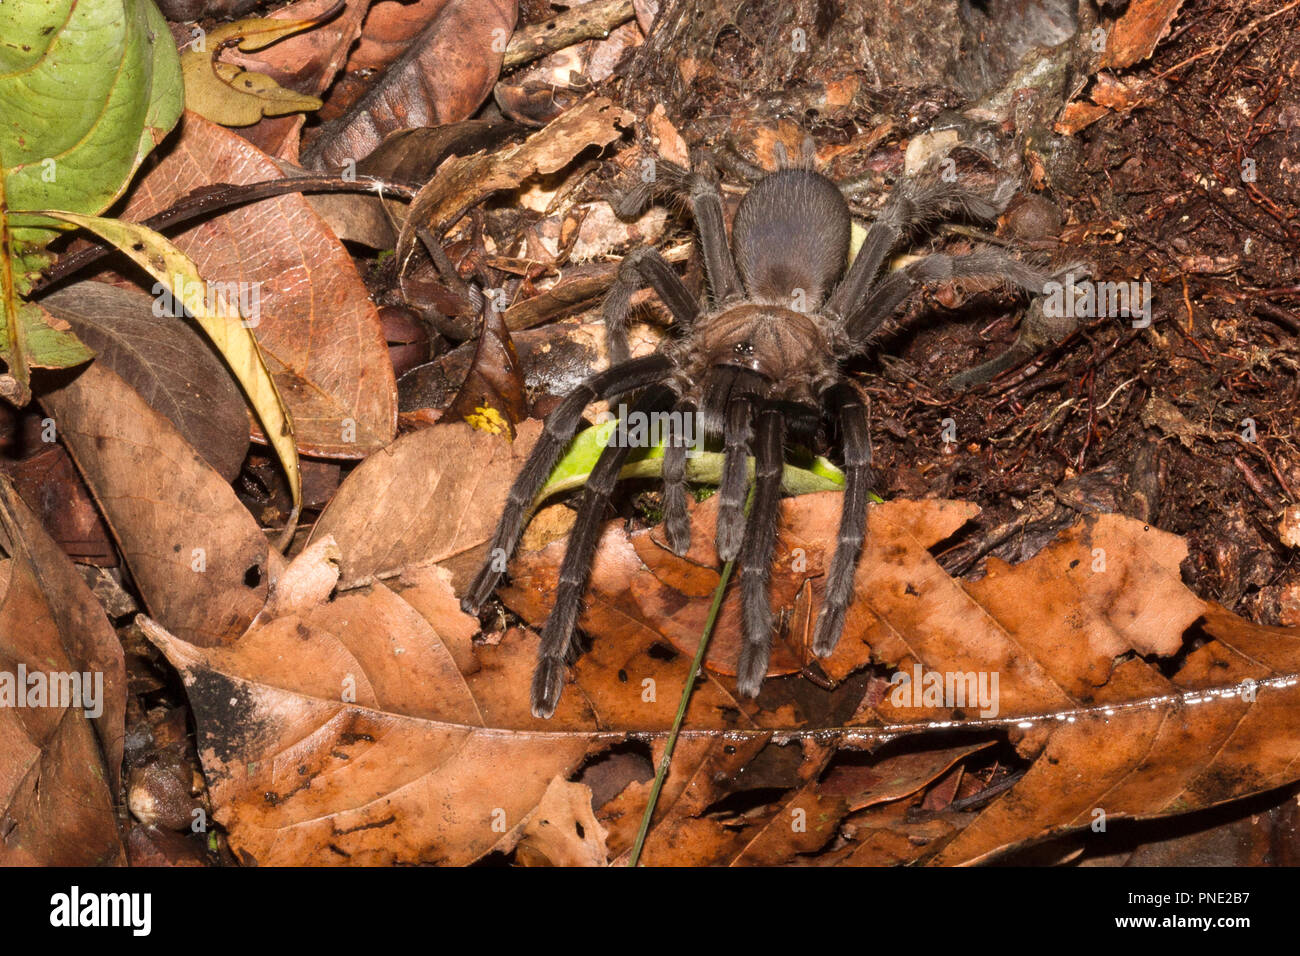 Spider on the ground in Tanjung Puting National Park, Kalimantan, Borneo, Indonesia. - Stock Image